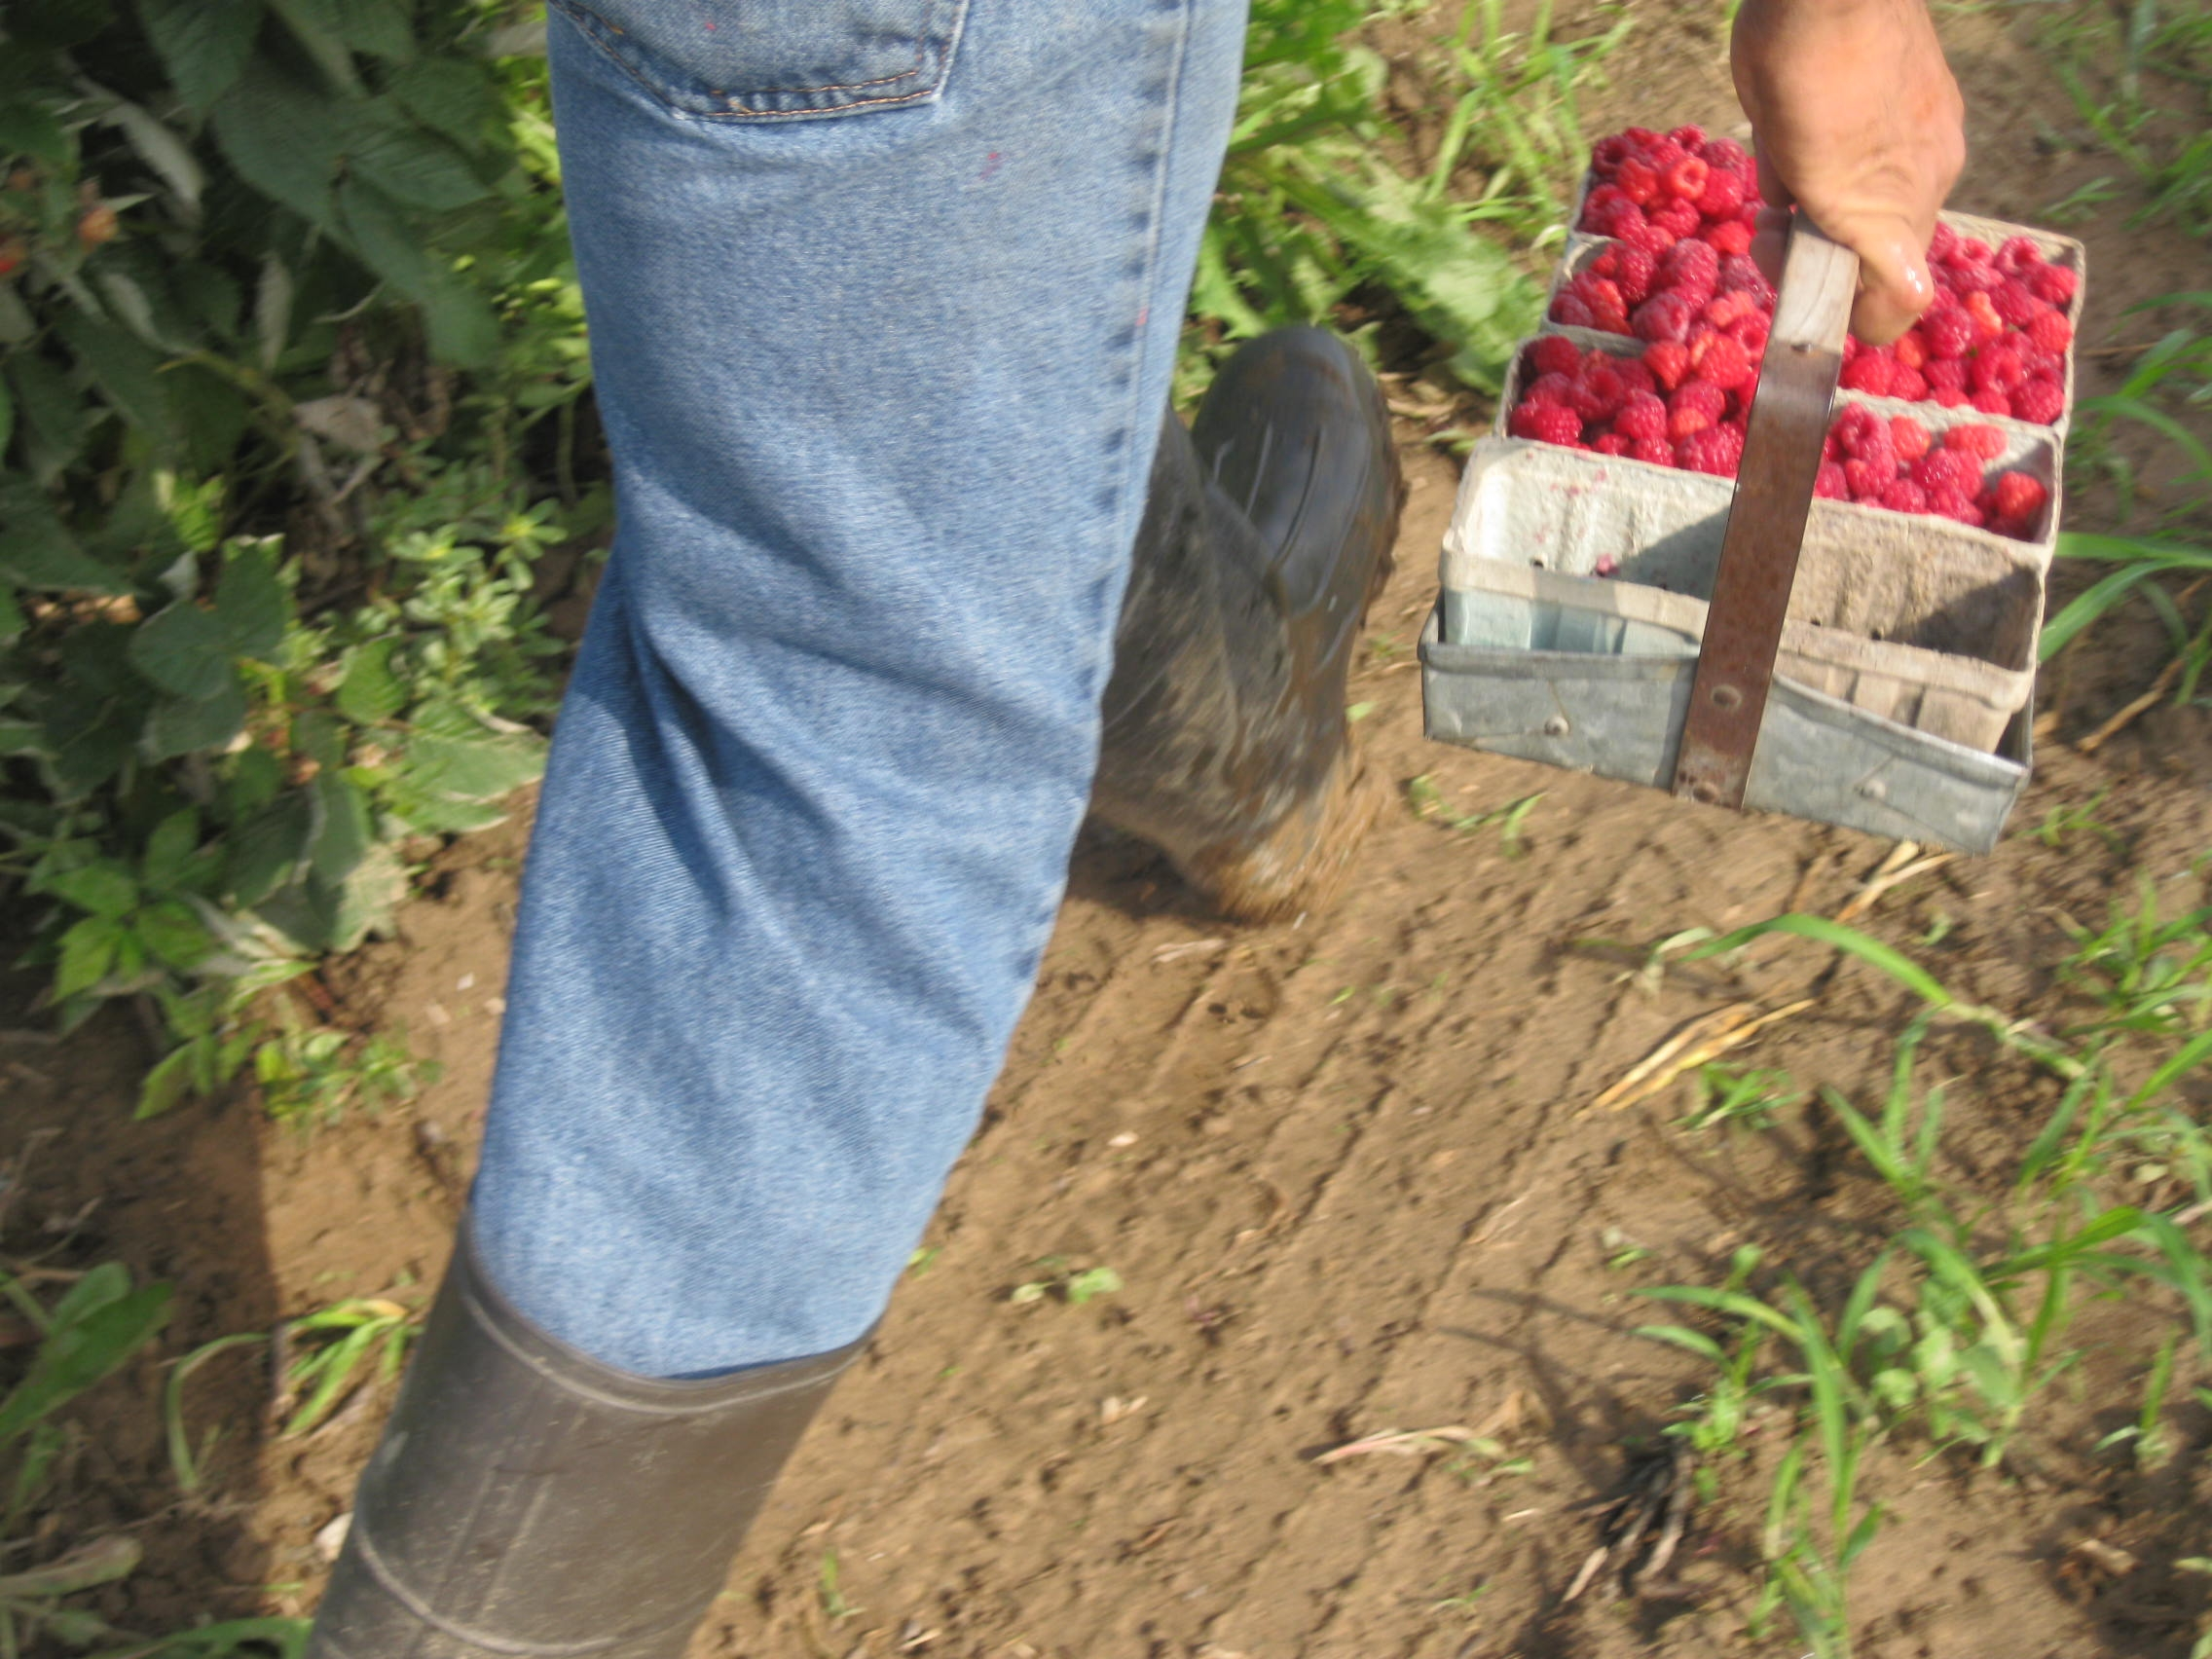 Raspberries. Image credit: Michigan Immigrant Rights Center